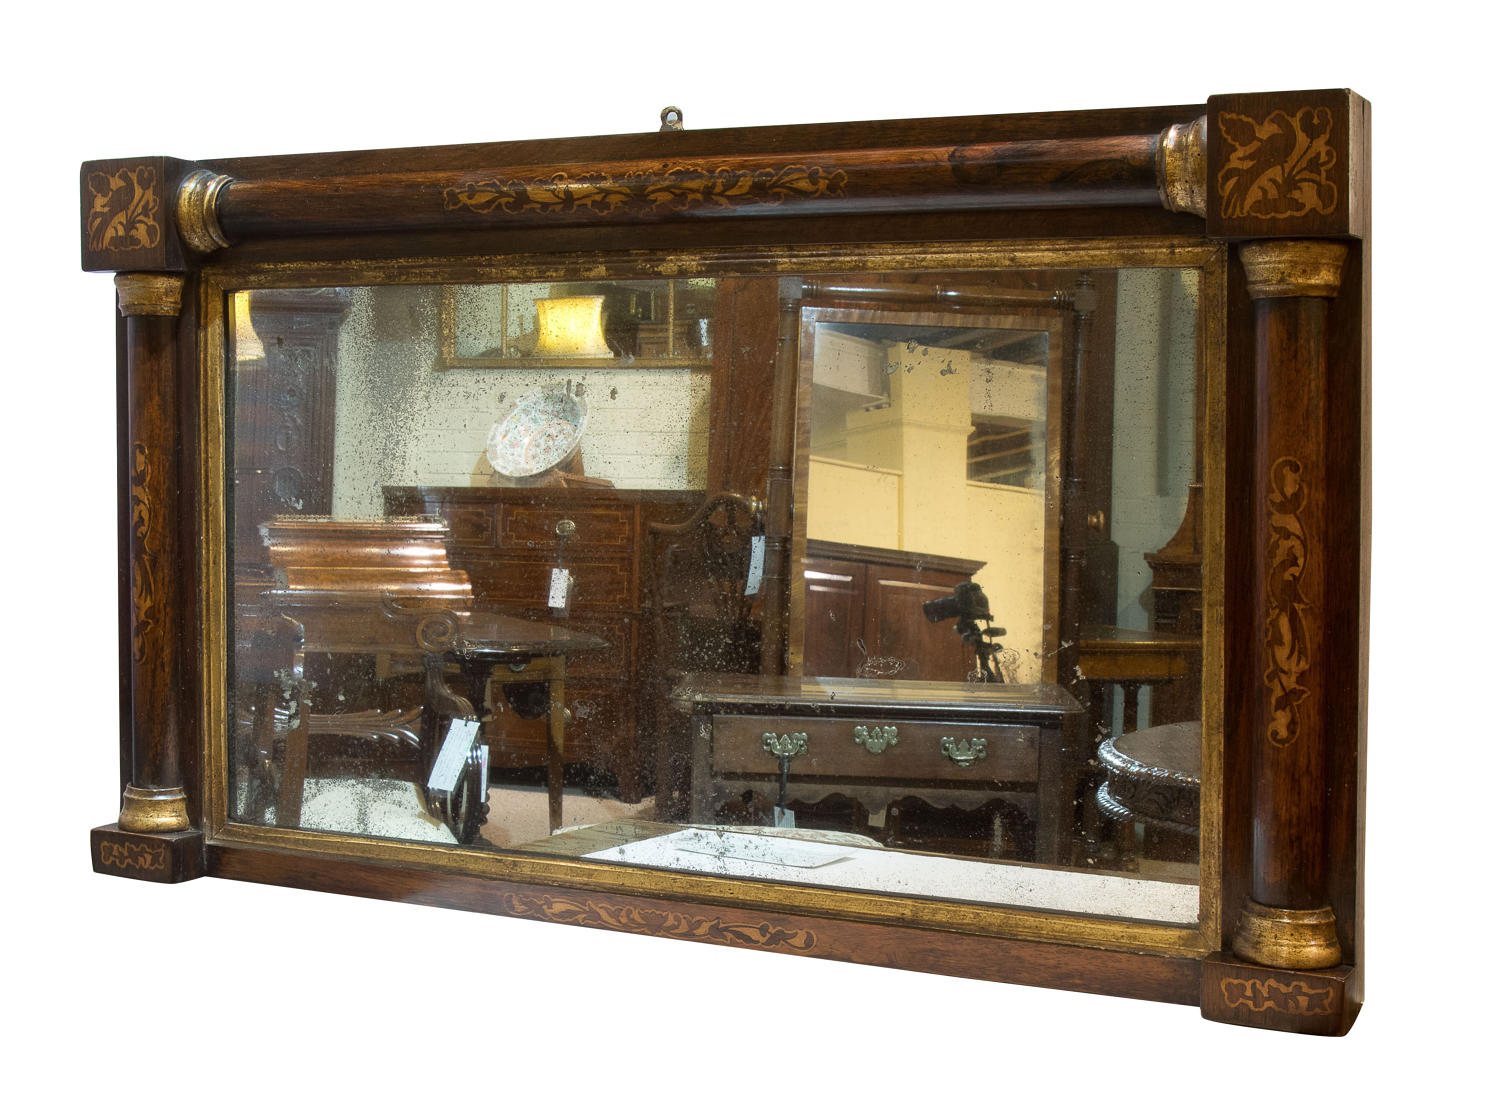 Rosewood and marquetry mirror c1840